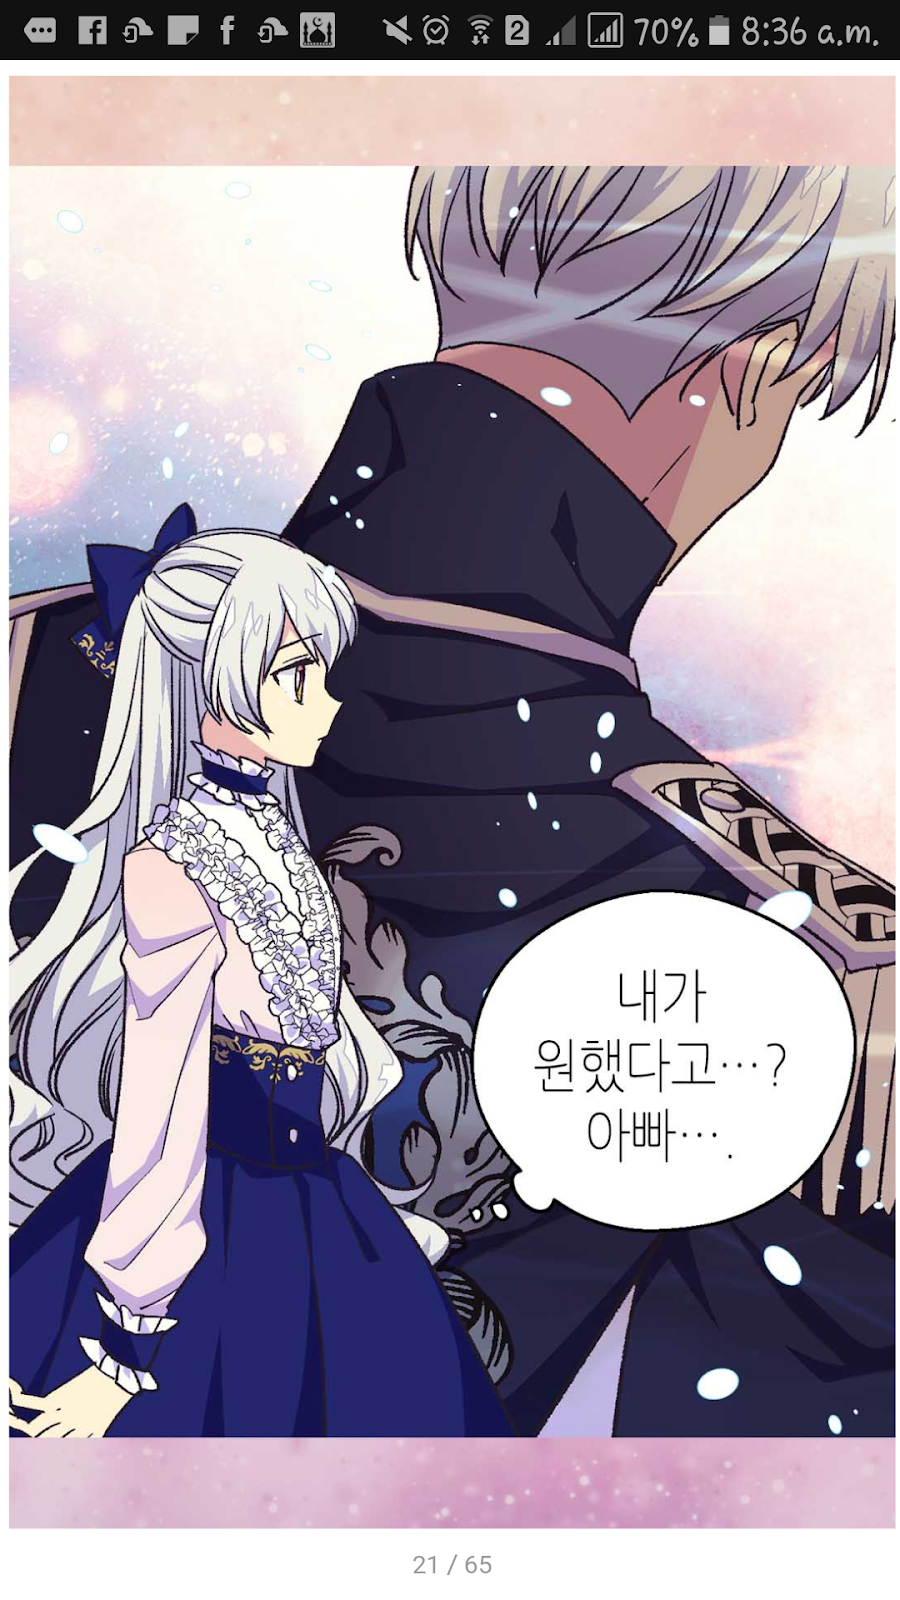 The Abandoned Empress 63 – Season 2 ch  16 – Oh My Manhwa